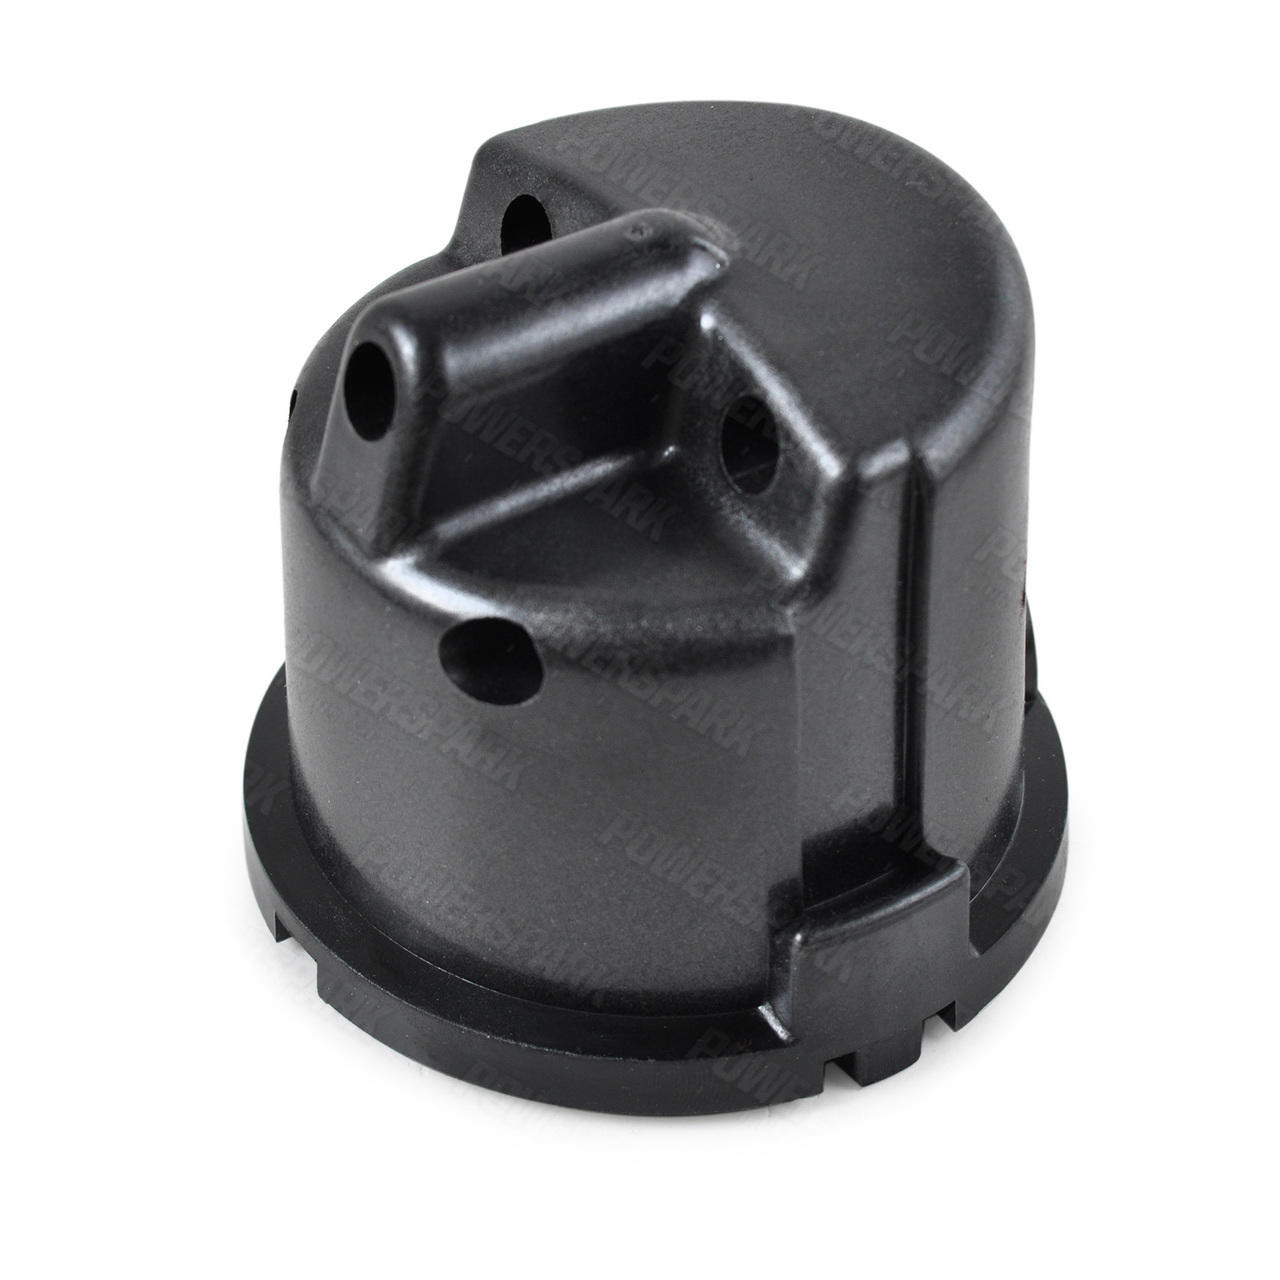 Powerspark Lucas DDB110 DM2 and 25D Distributor Cap Side Entry